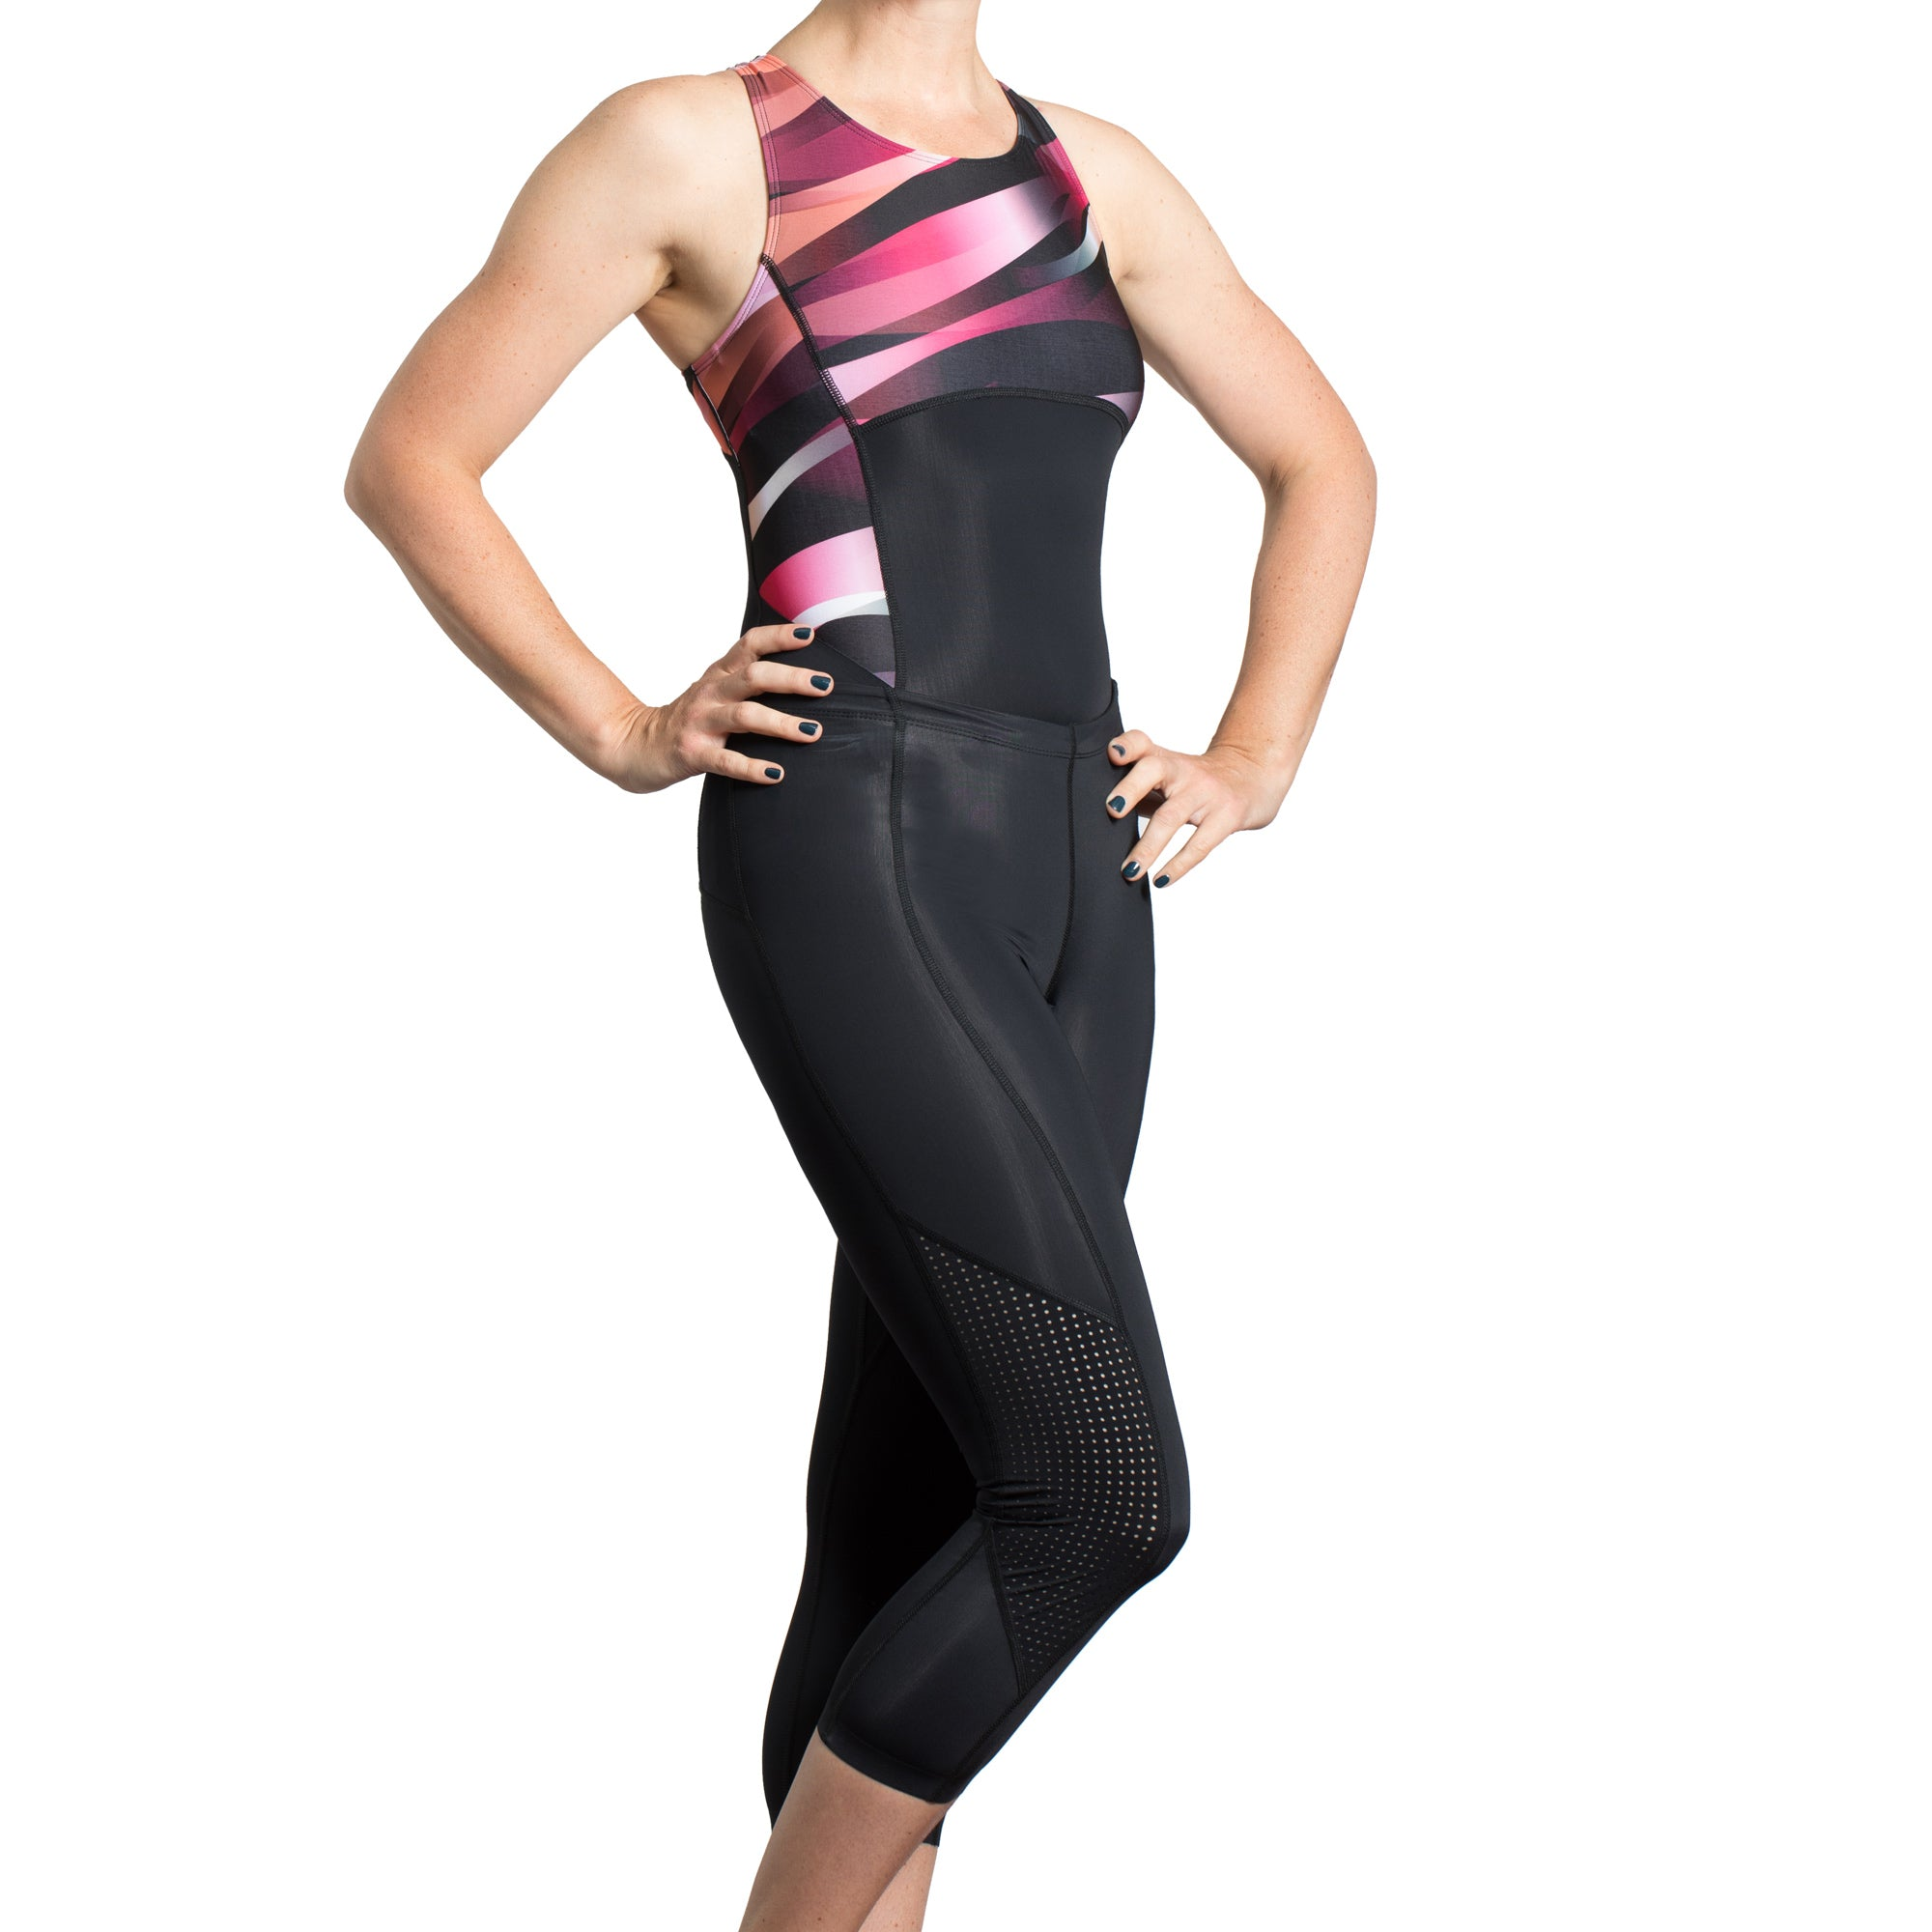 Bestseller Trigirl two-piece triathlon suit in red/ pink. Now on SALE, 25% off